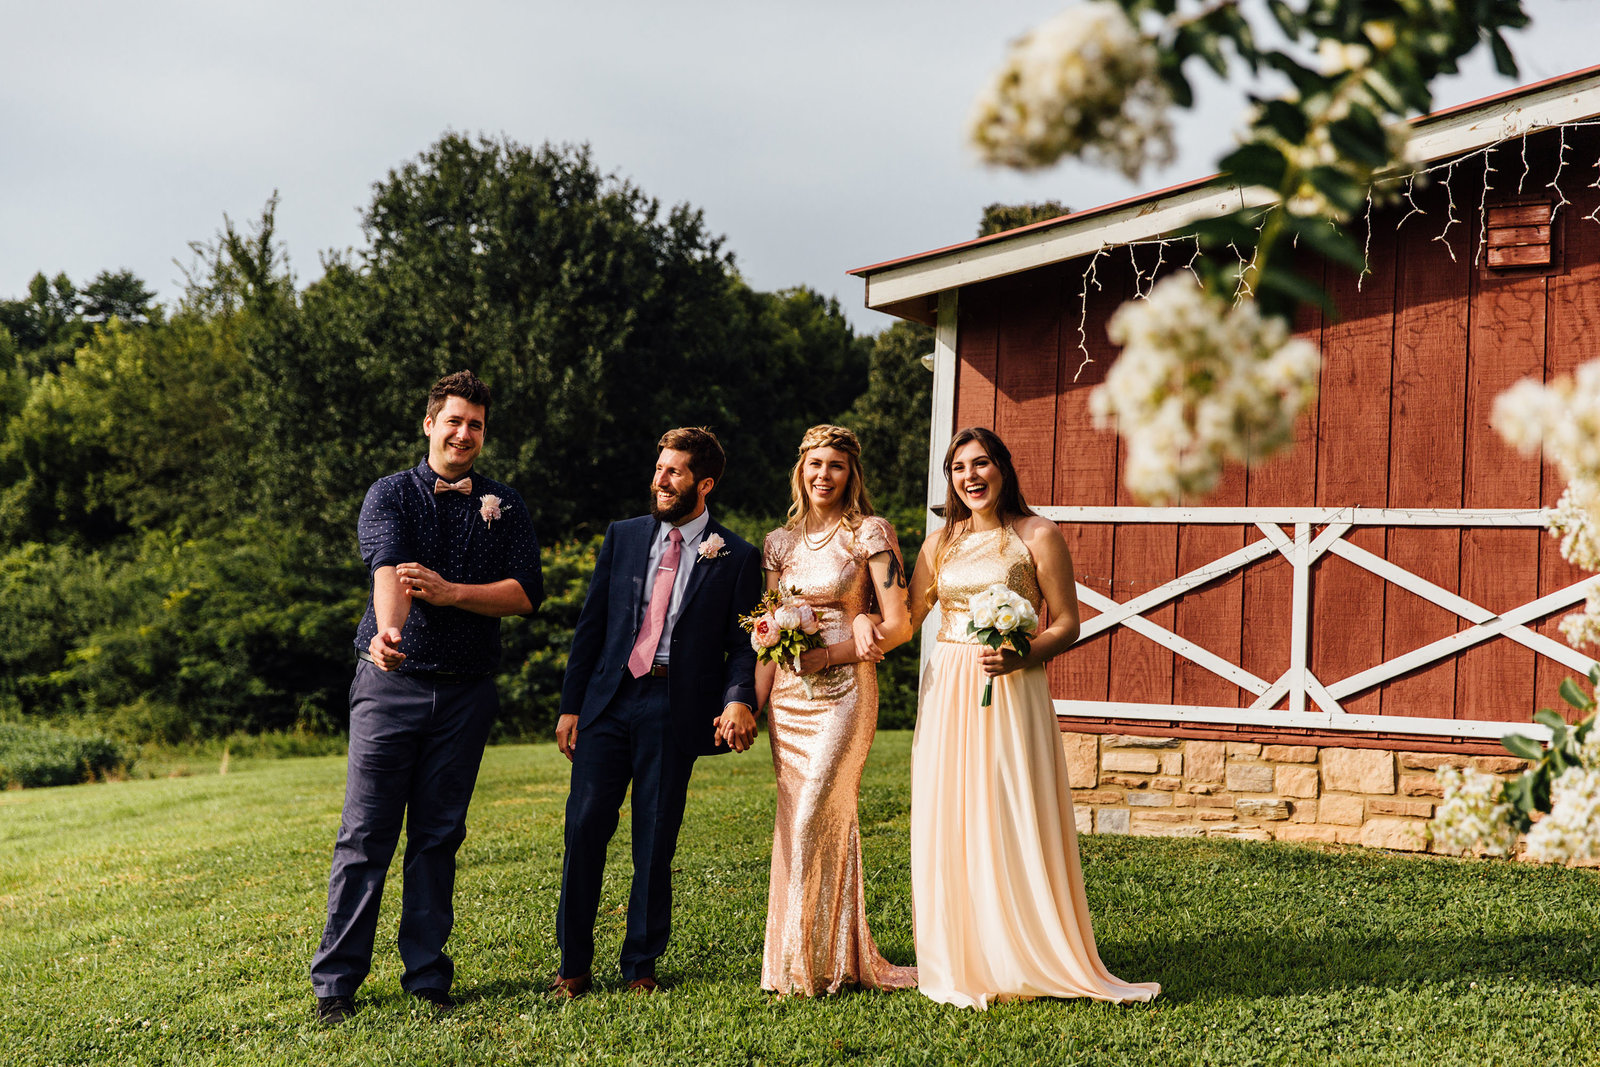 SaraLane-And-Stevie-Wedding-Photography-Alyse-Michael-Ocoee-River-Barn-Tennessee-LR-Edits-41